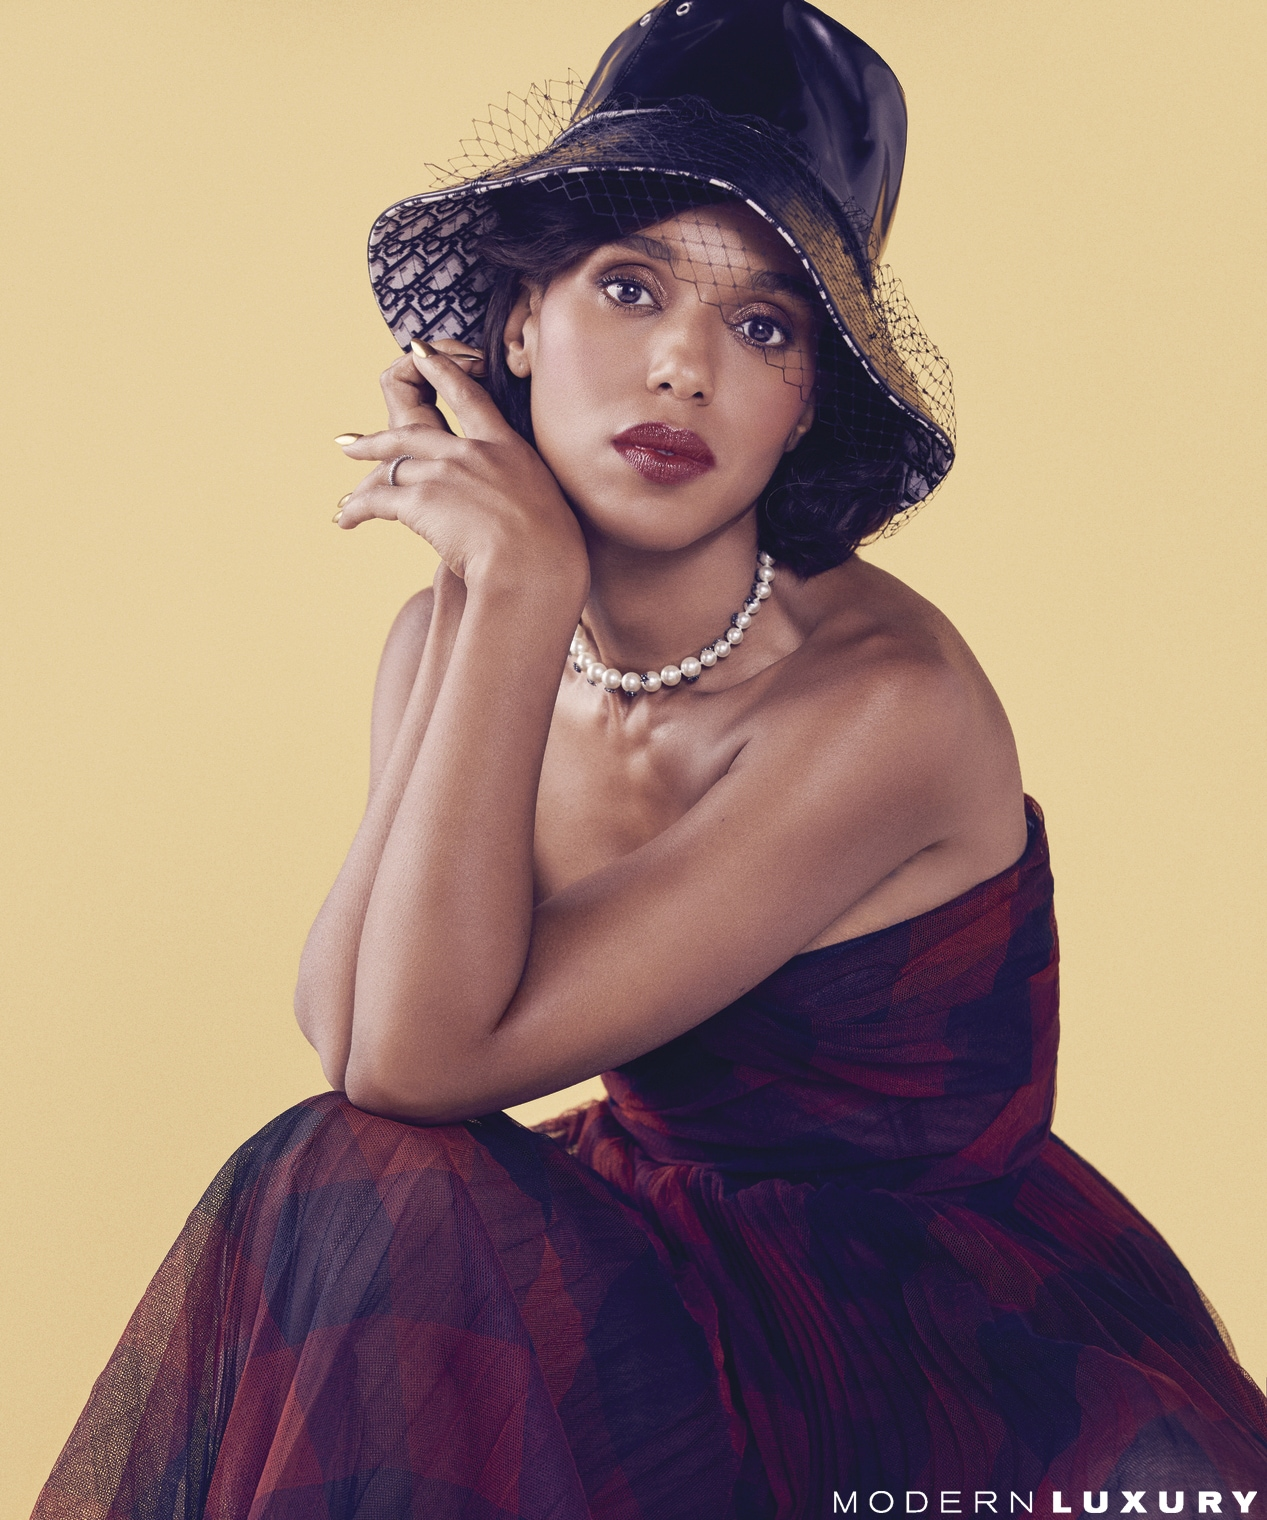 RROSALES_ML_KERRY_WASHINGTON_1217_HIGHRES(PE)_wm_byRamonaRosales.jpg